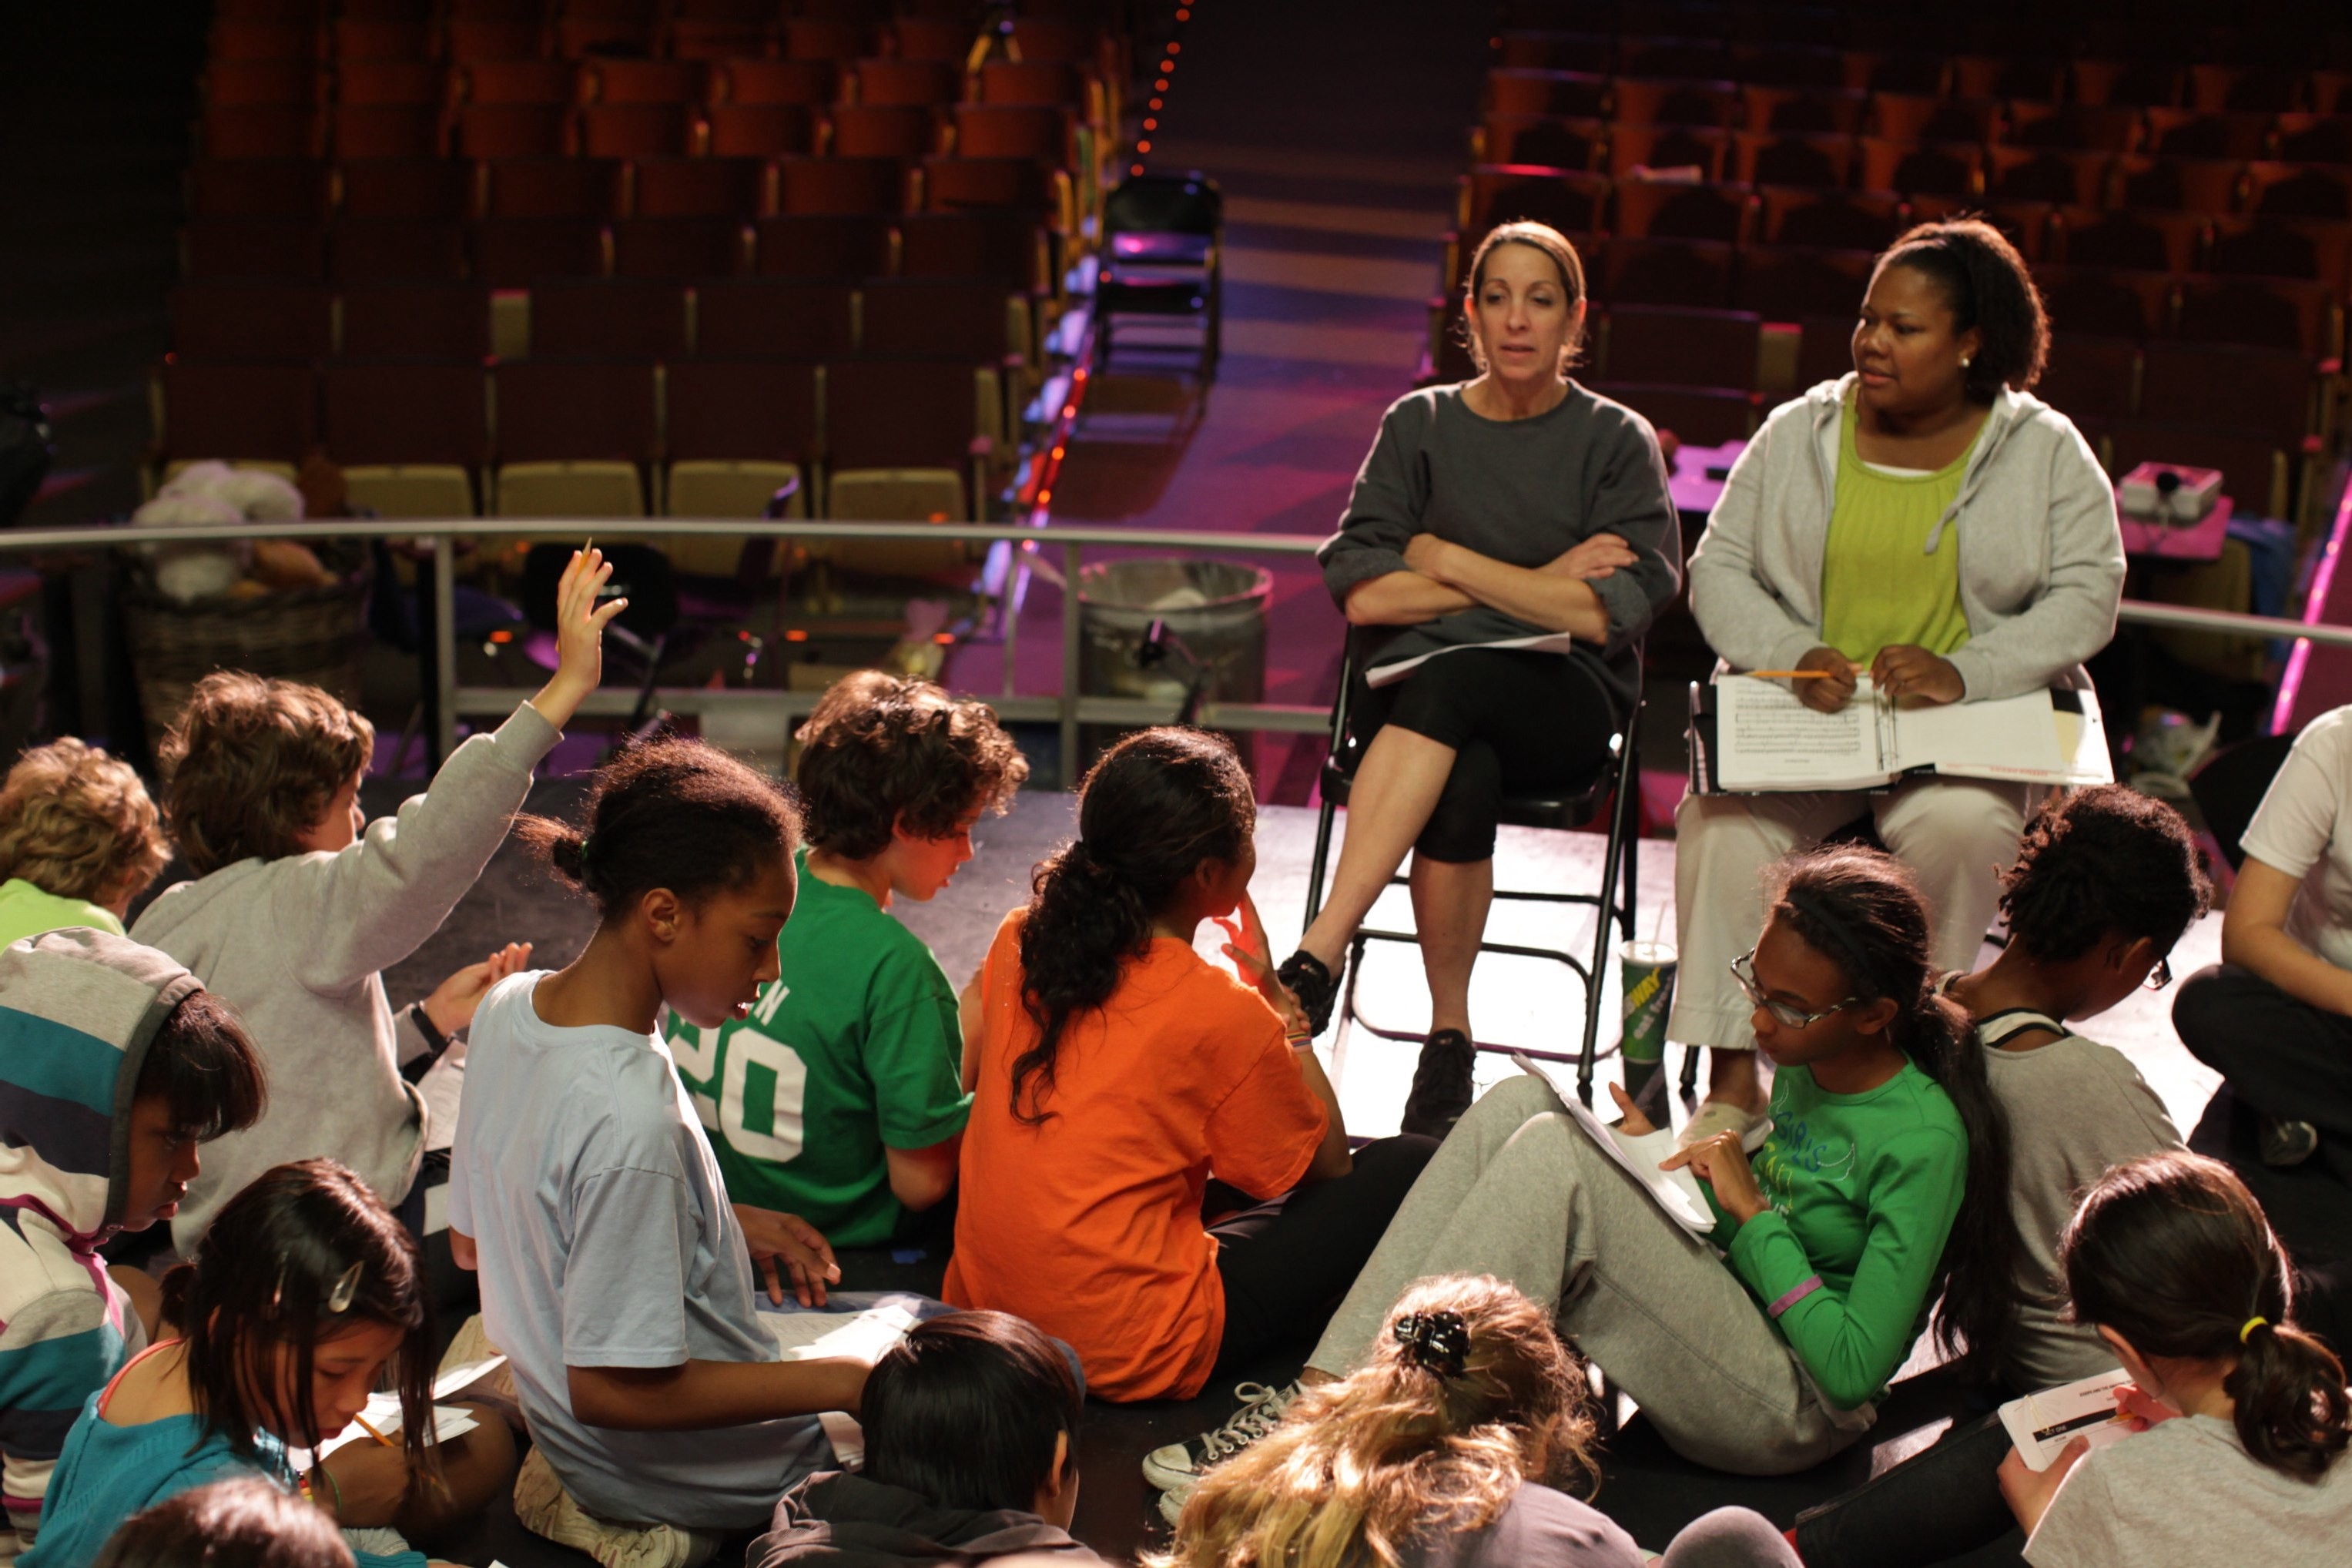 Diane R. Feldman ( seated on the left/dark grey sweatshirt) gives notes after a rehearsal